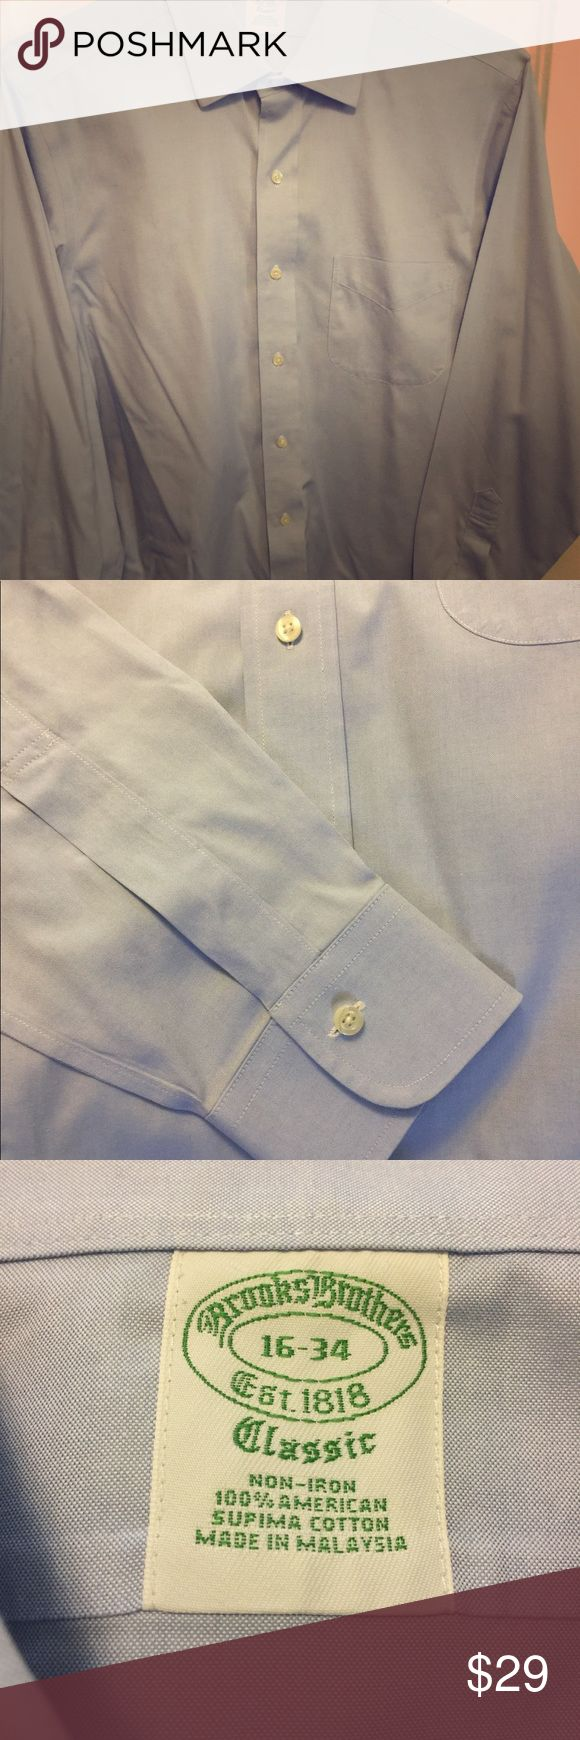 Brooks Brothers Milano Fit Non-Iron Dress Shirt Light Blue Brooks Brothers Milano (extra slim) Fit Non-Iron Dress Shirt 16-34 100% supima cotton, Great condition Brooks Brothers Shirts Dress Shirts